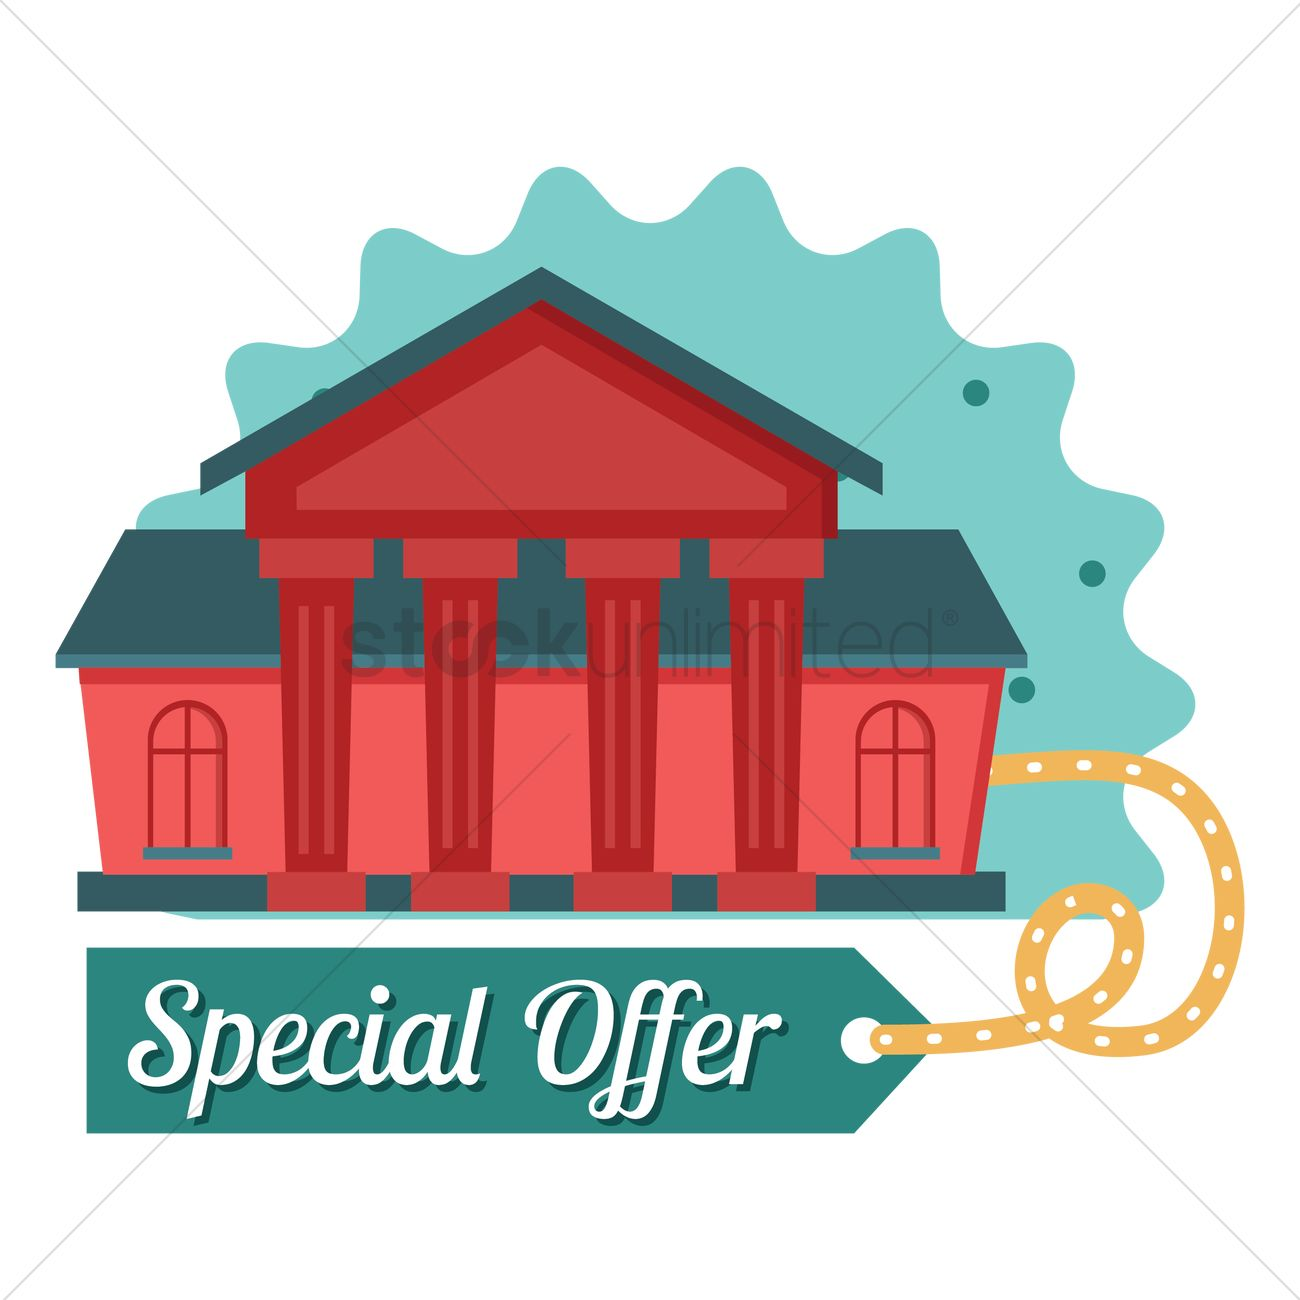 Special offer on home sale Vector Image.